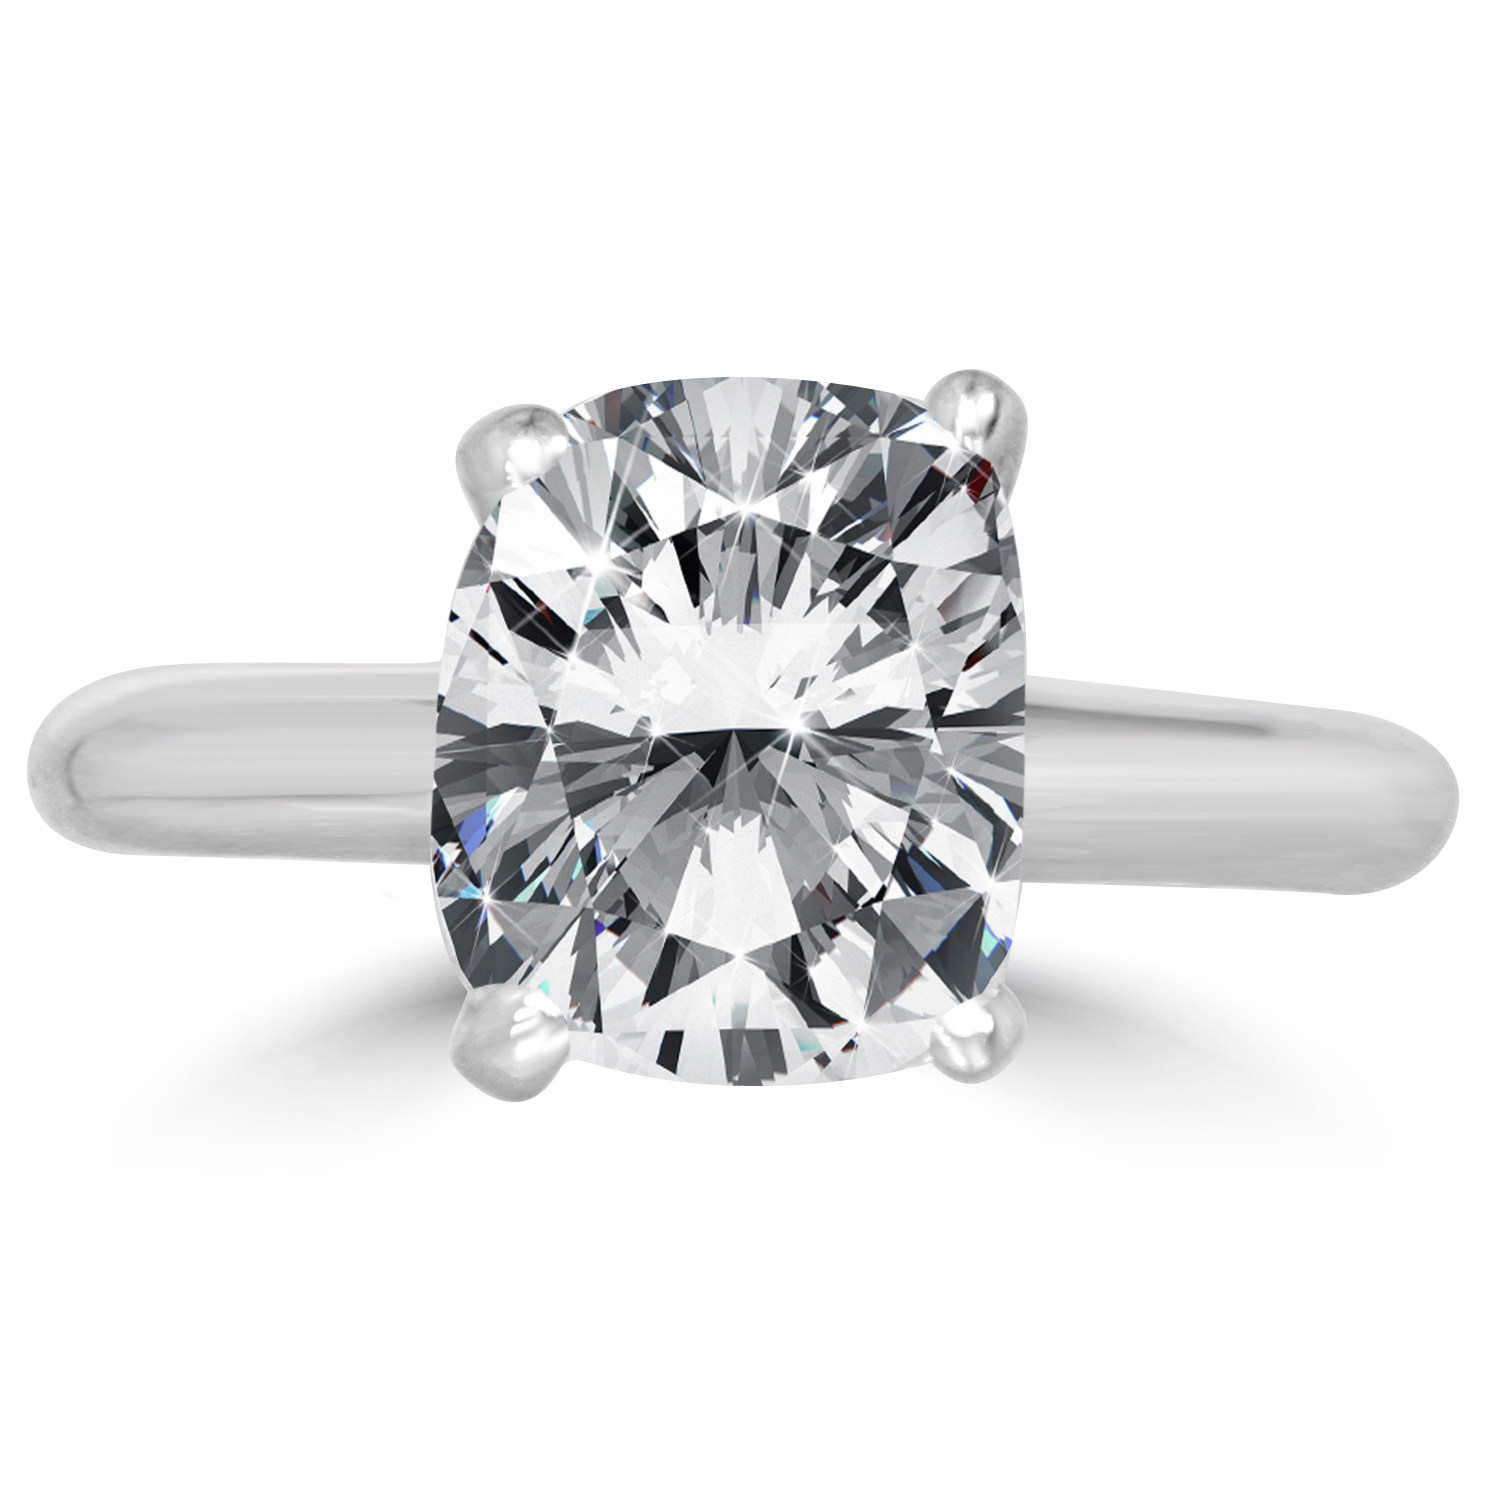 3 54 Ct Cushion Cut Diamond Engagement Ring SI1 D 14K White Gold